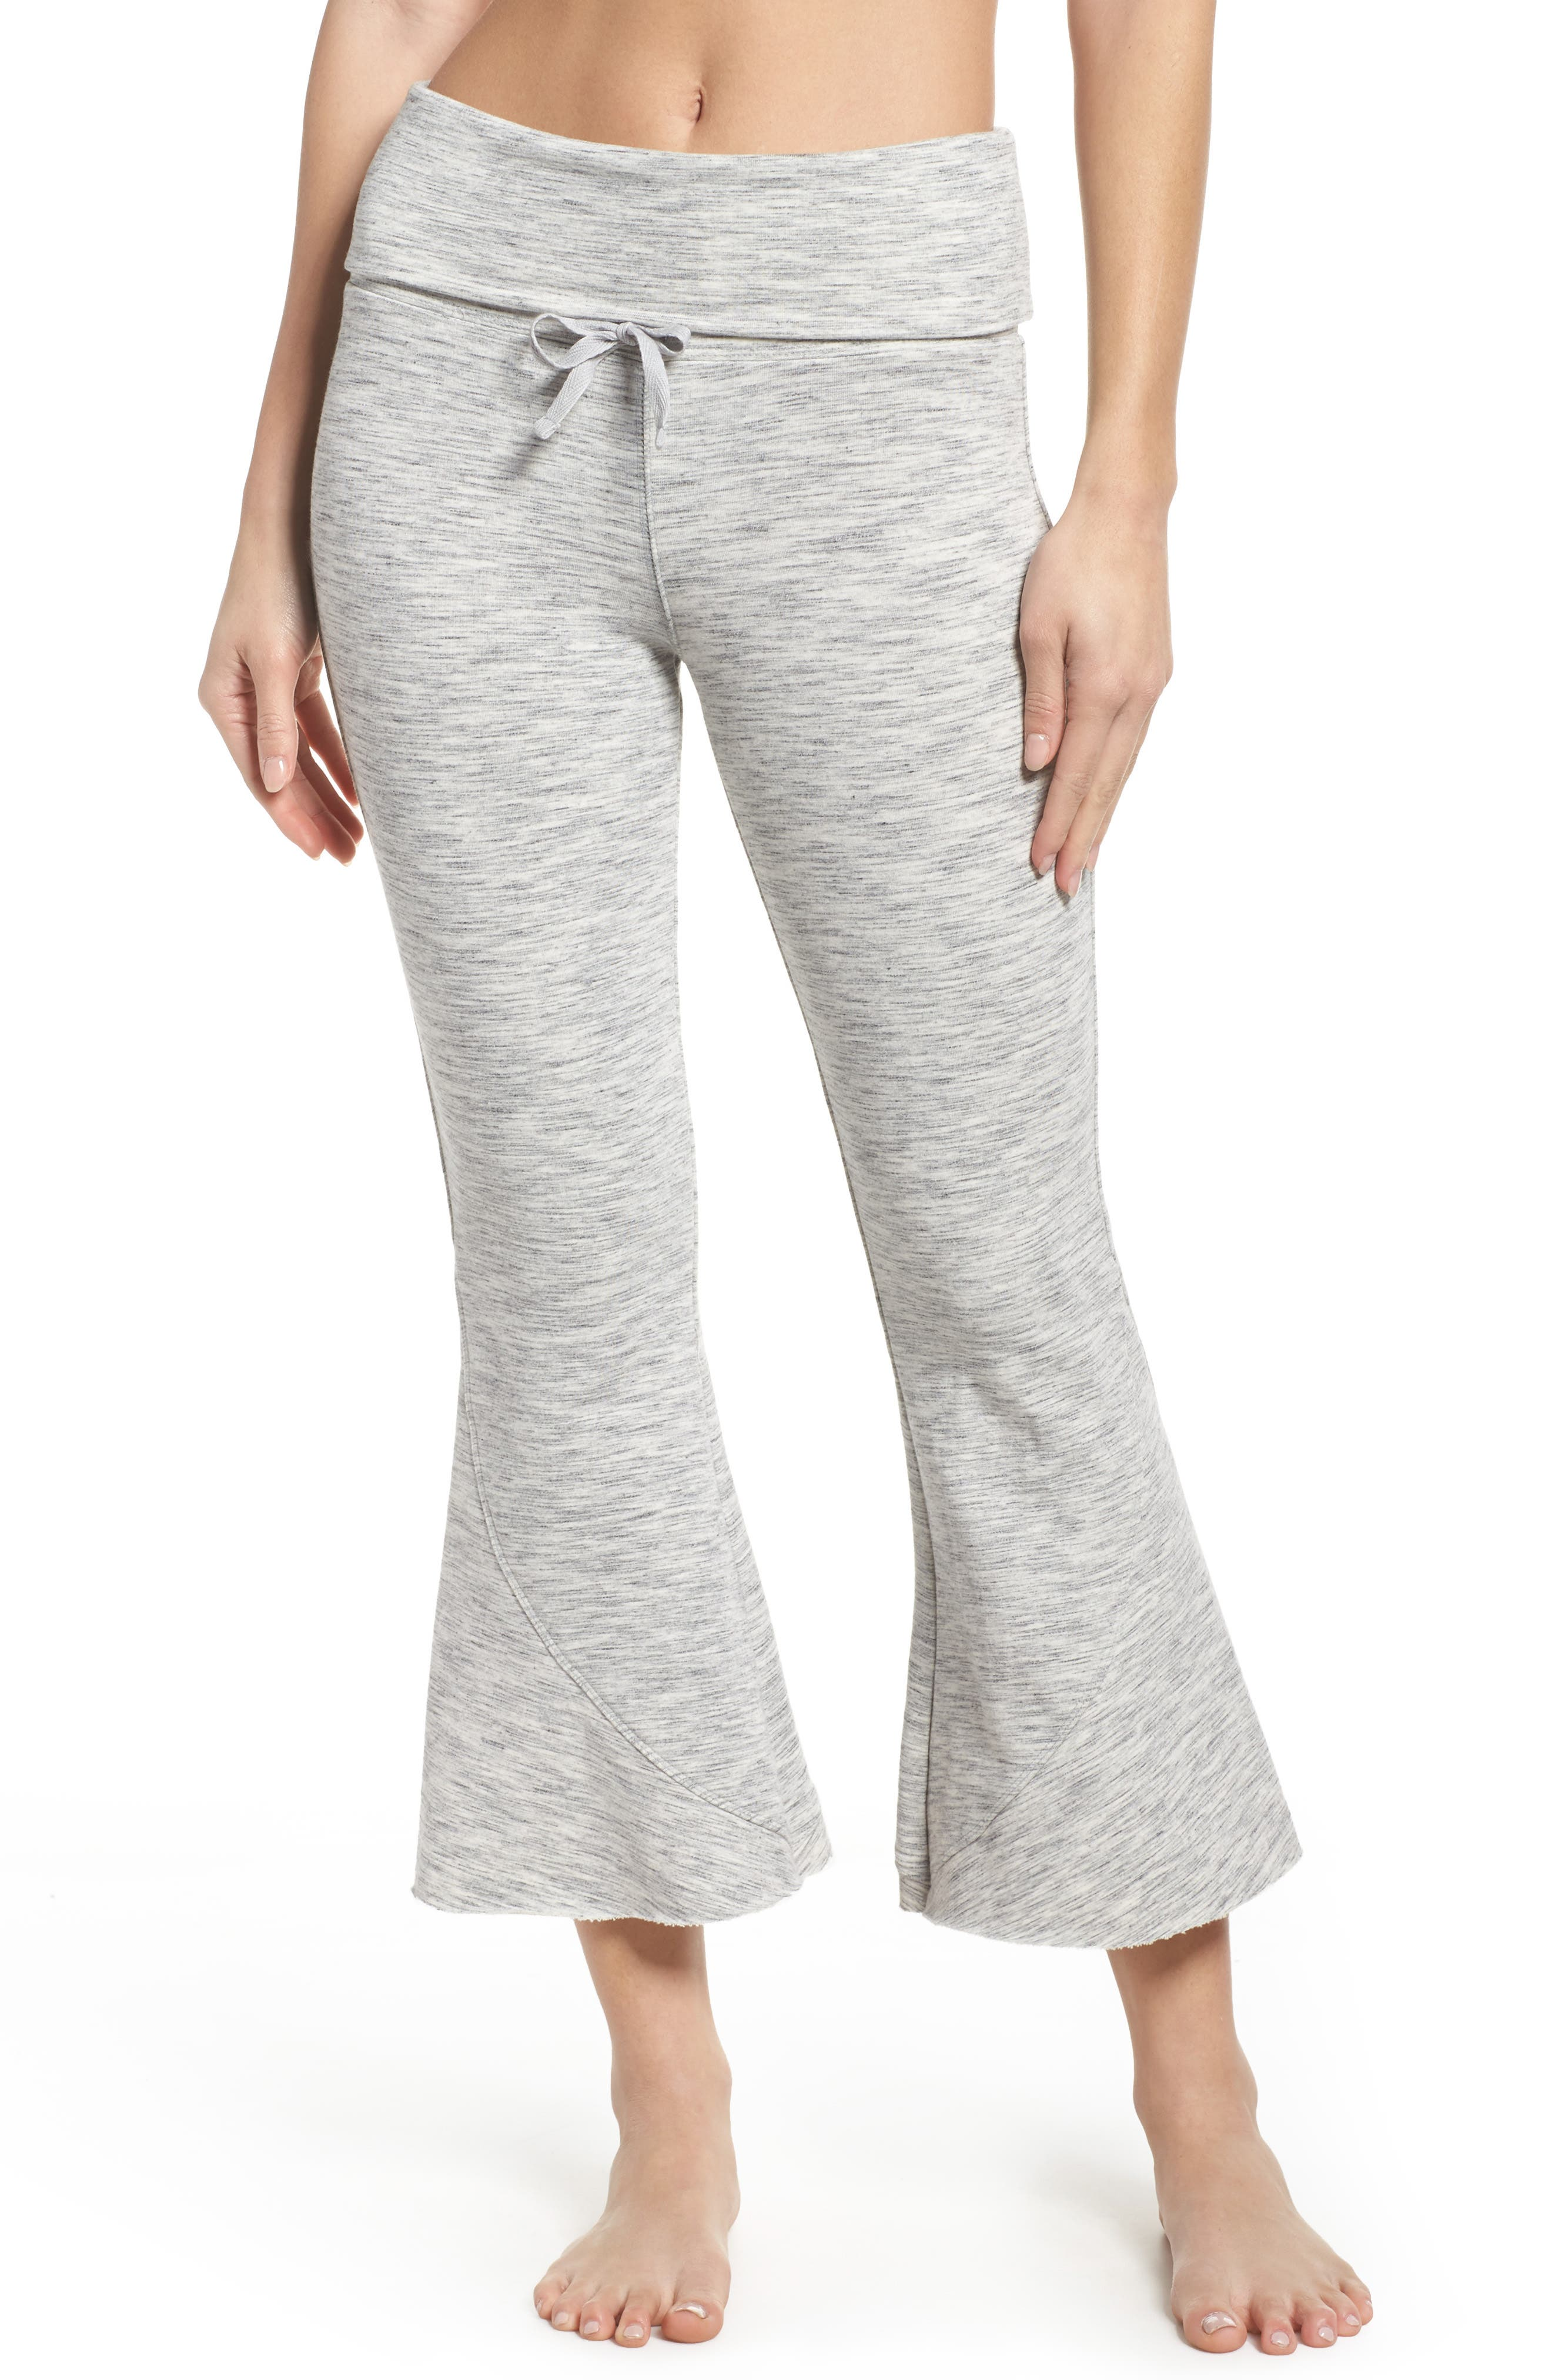 FP Movement Nico Crop Flare Sweatpants,                         Main,                         color, 025